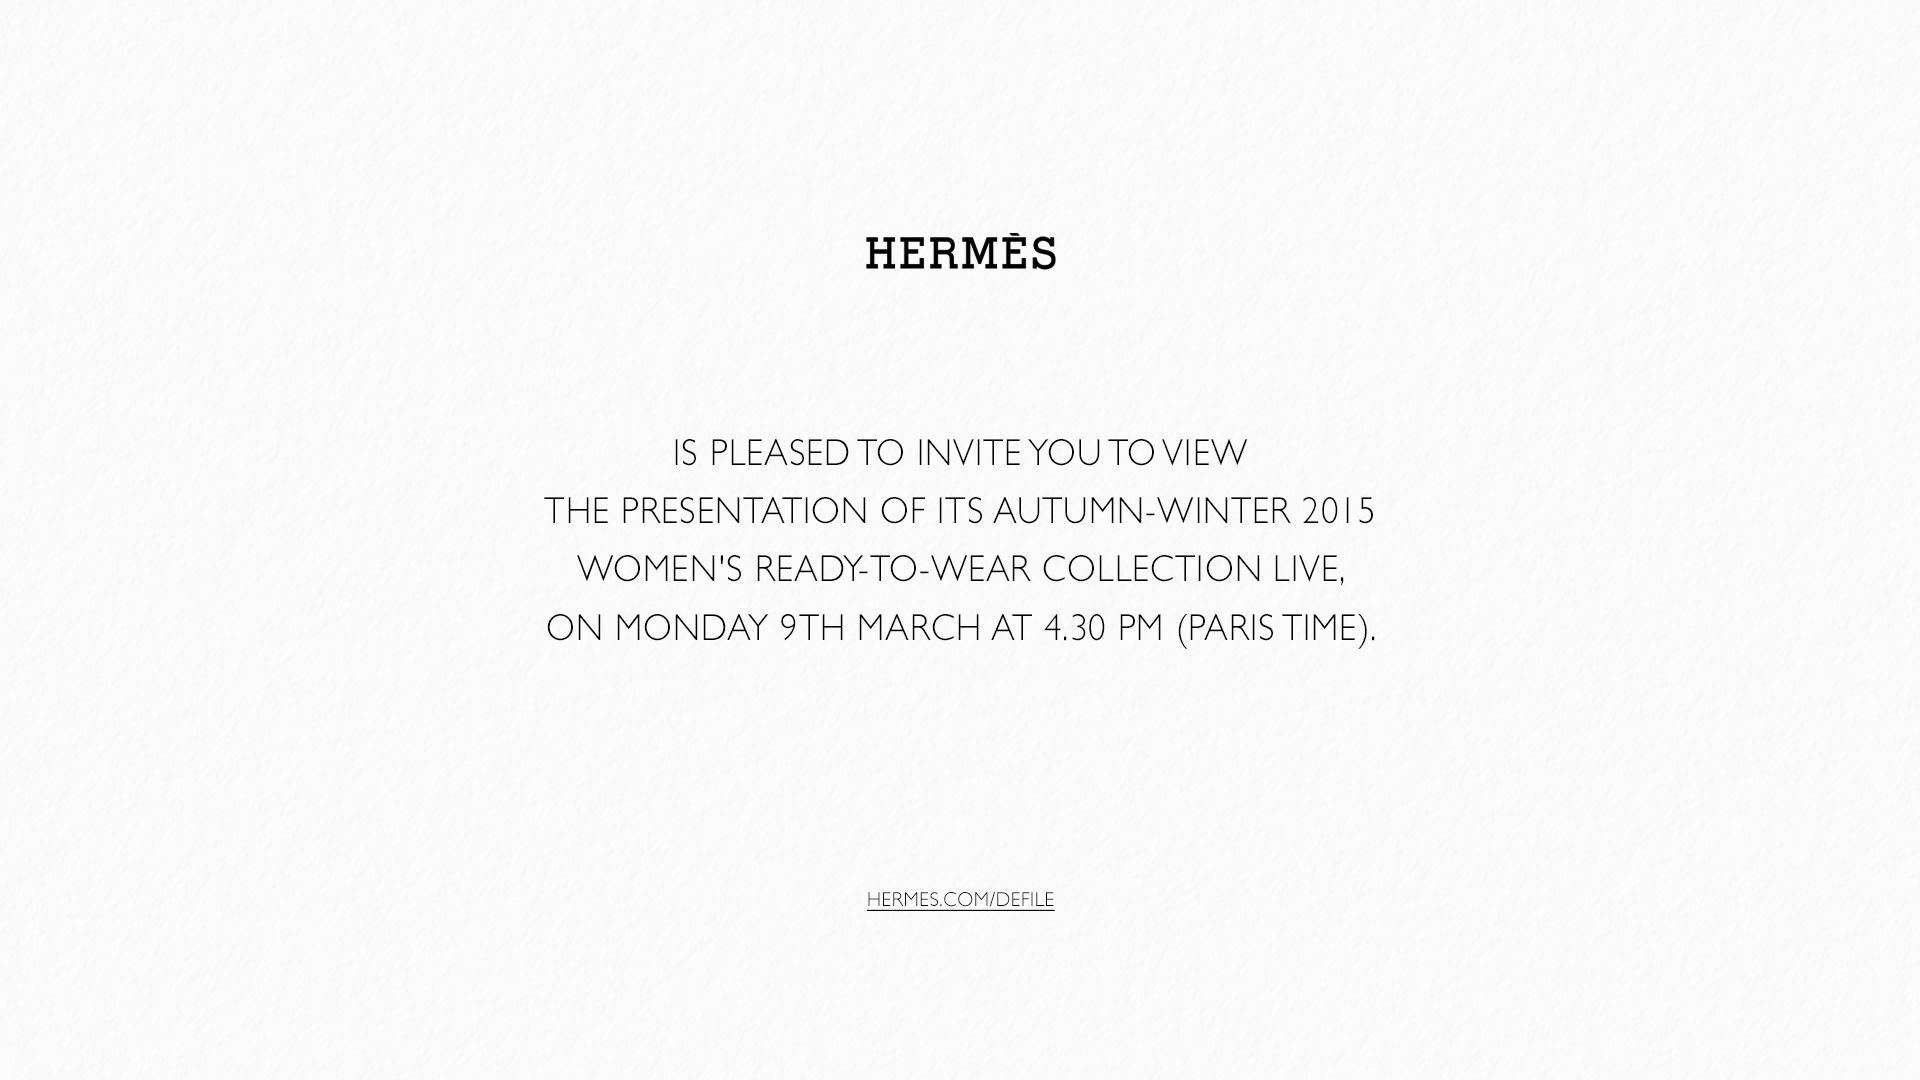 Hermès Fall Winter 2015-16 Women's Fashion Show Live from Paris